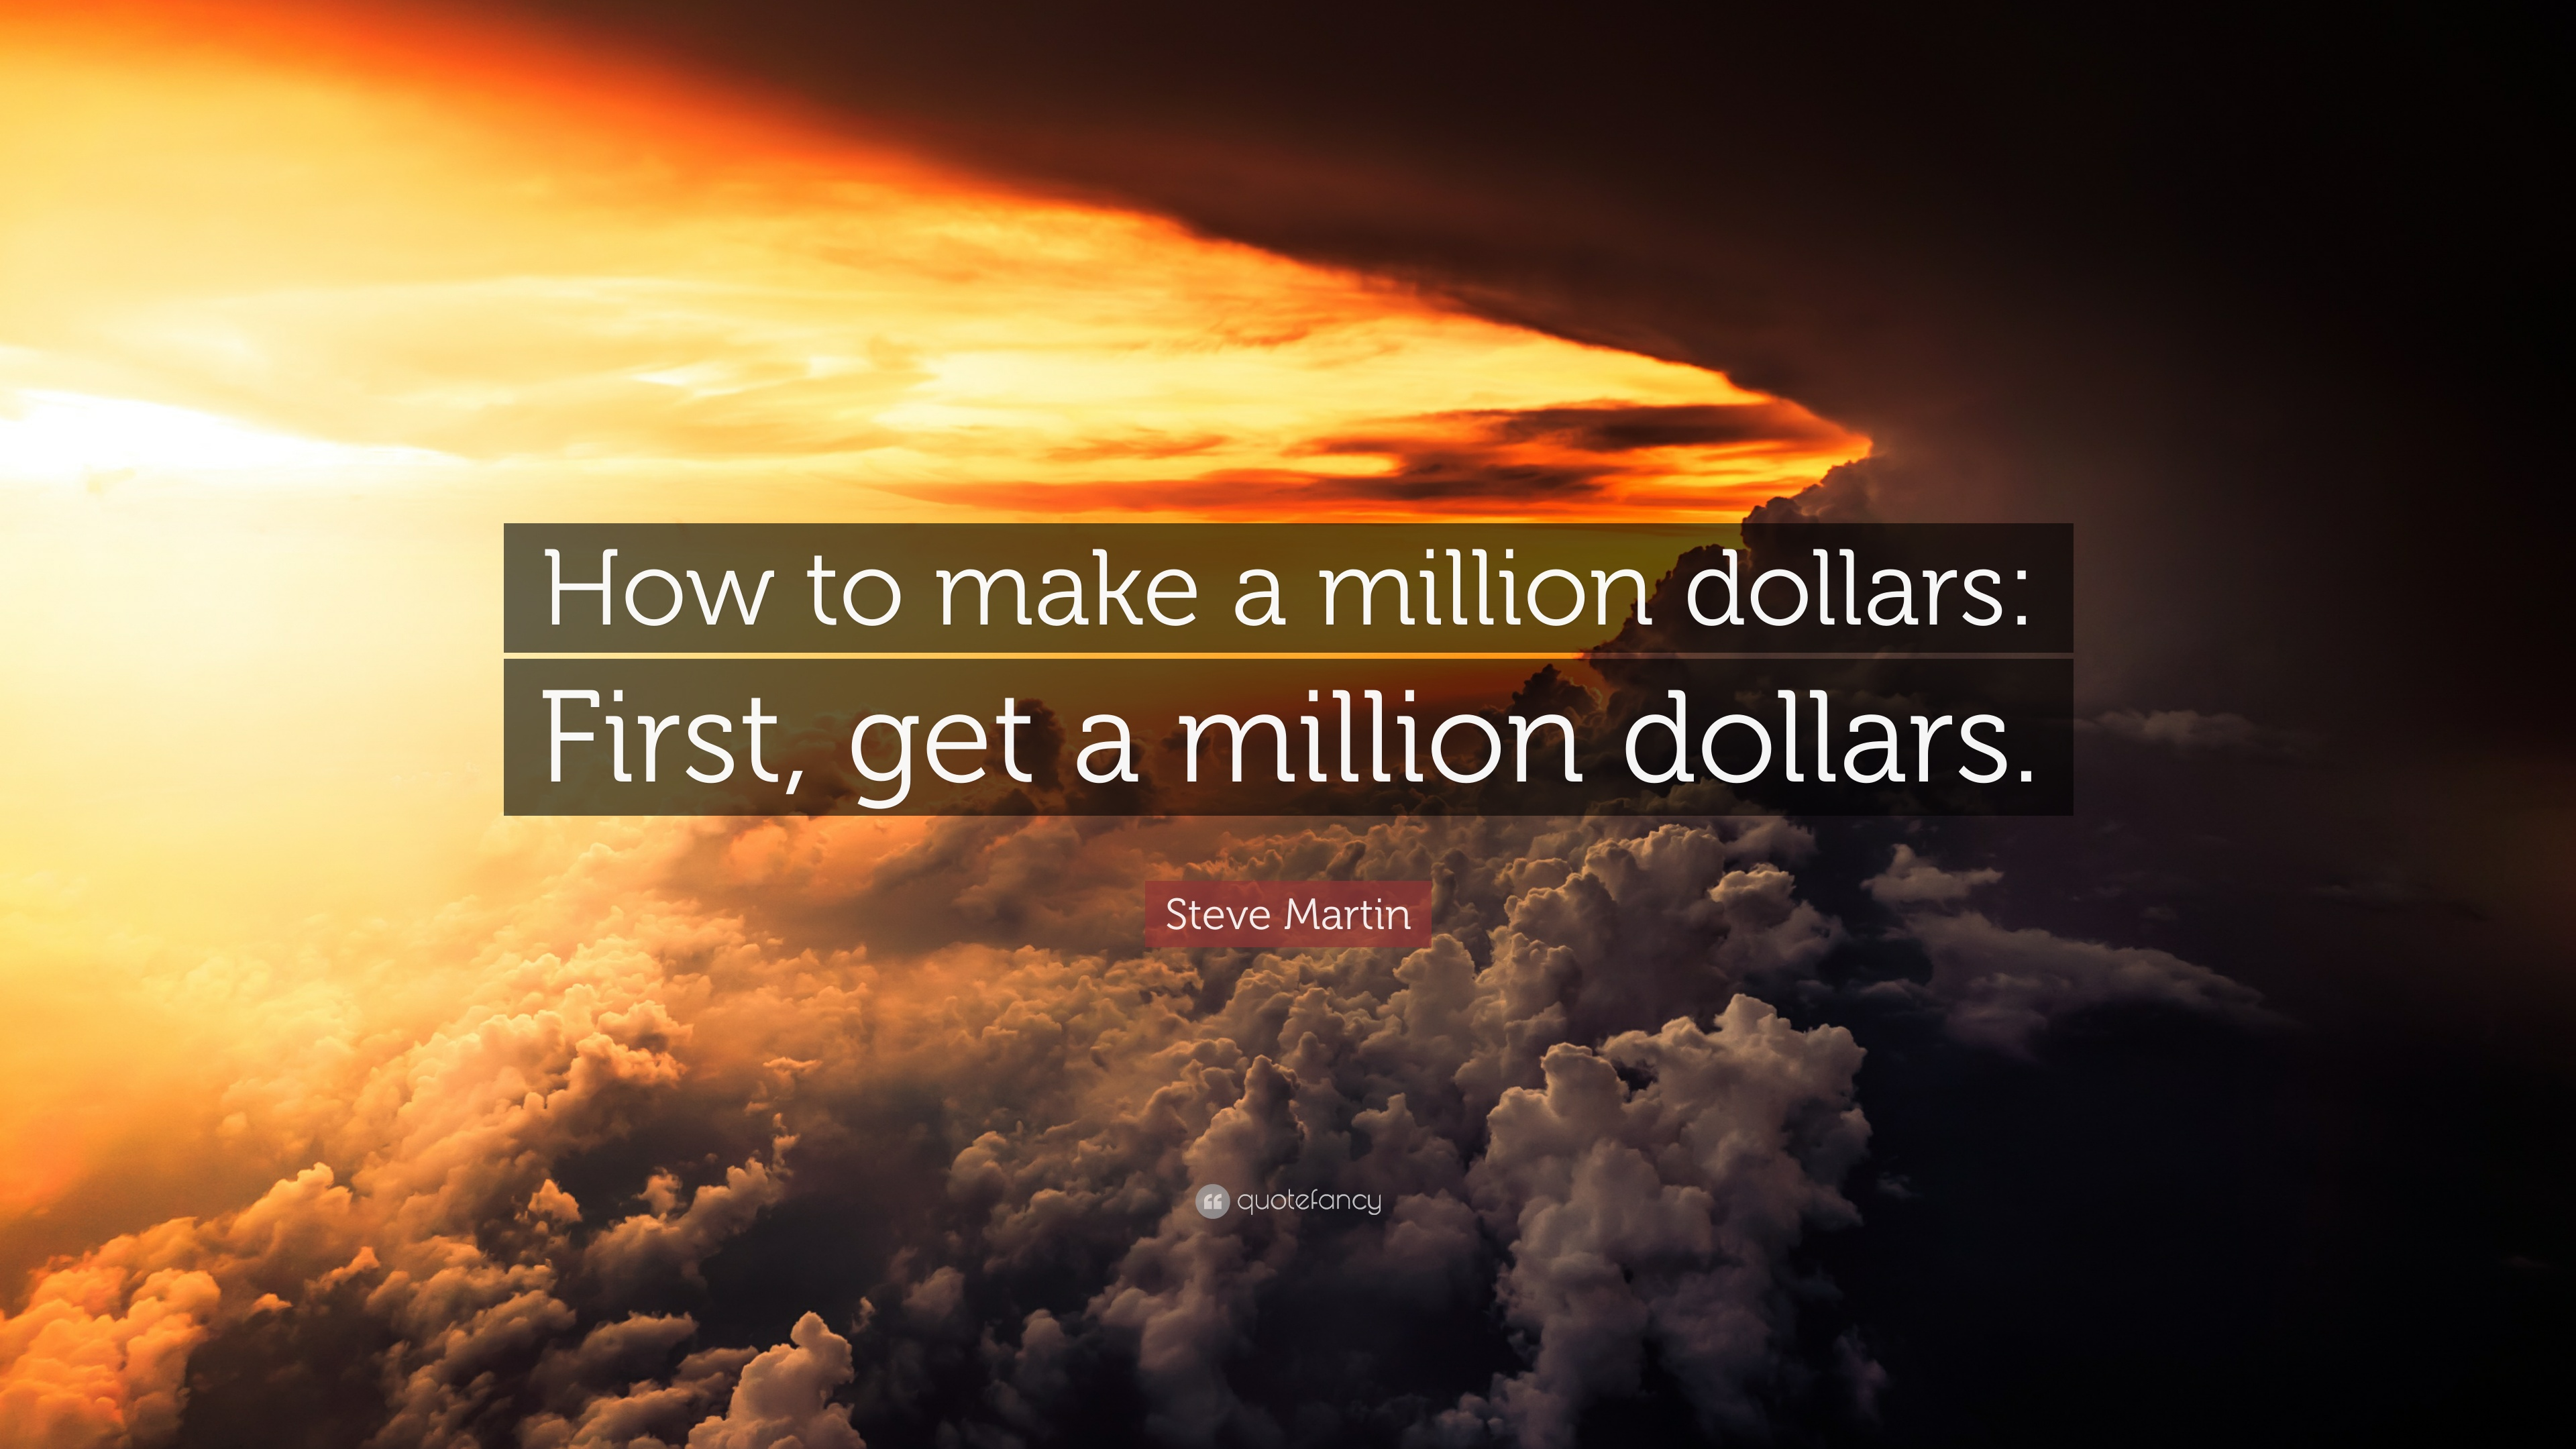 Make $1 Million Fast: 8 Real-Life Strategies That Worked